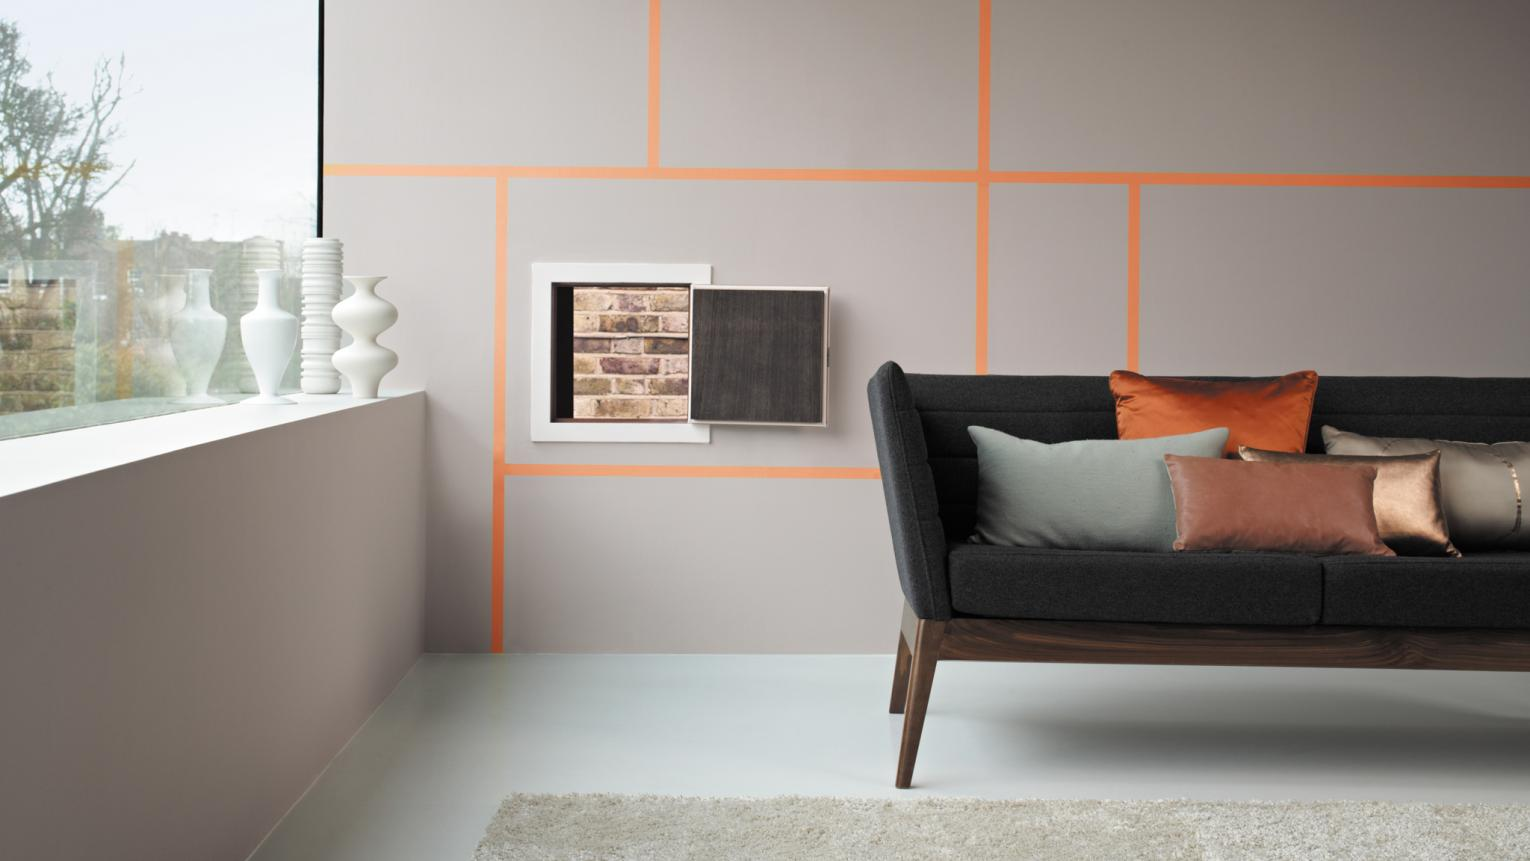 Flirt with colour by adding just a hint of bright orange.